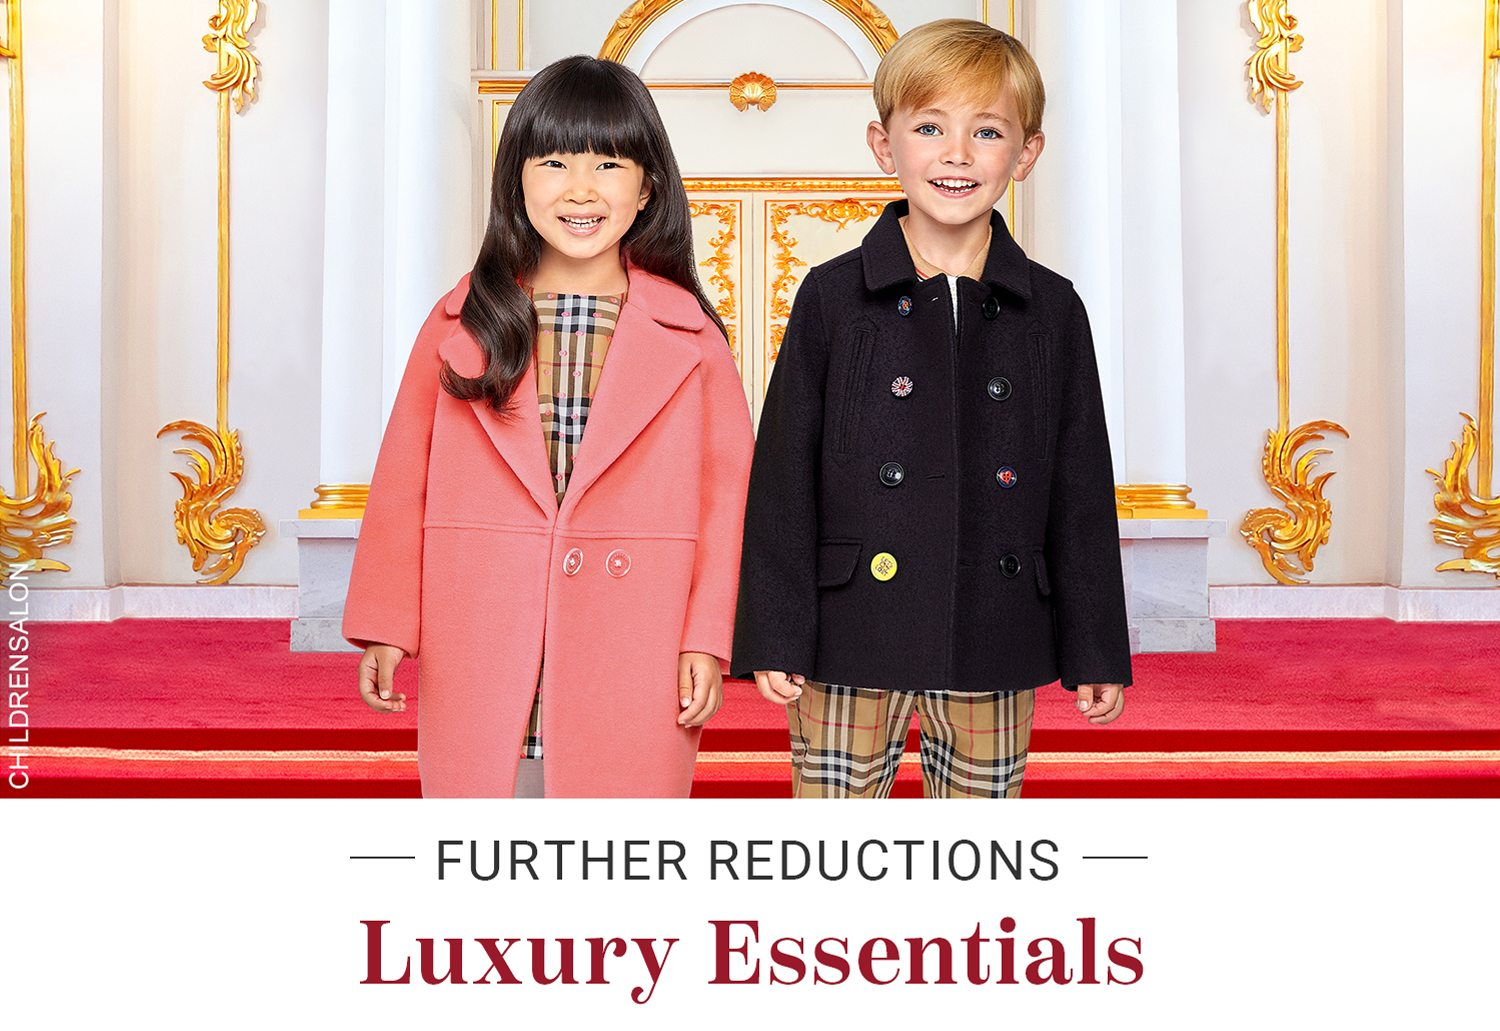 ba64a2d4f446 Further Reductions  Luxury Essentials - Childrensalon Email Archive